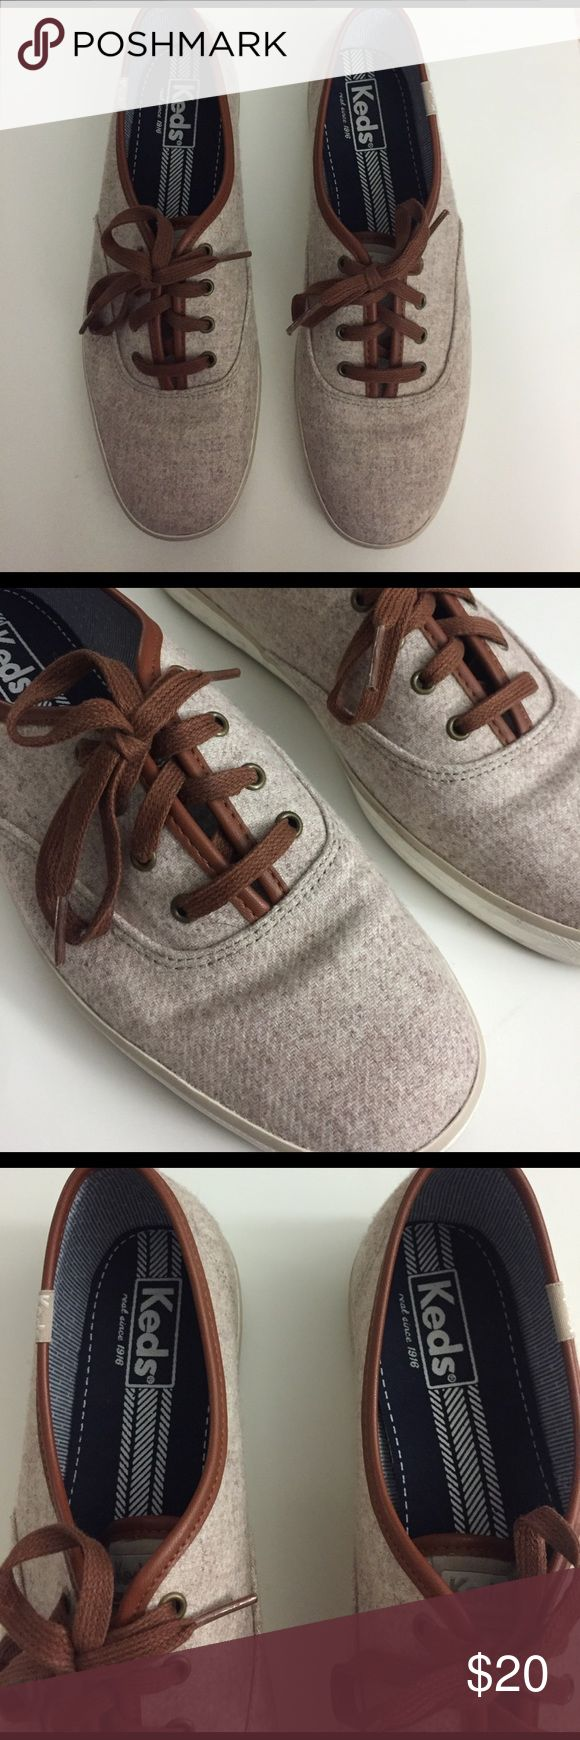 Keds classic sneakers These are the classic style of Keds sneakers. Color is a heathered tan with brown leather trim and laces. They also come with tan replacement laces. I only wore these out once so they are practically new! Keds Shoes Sneakers